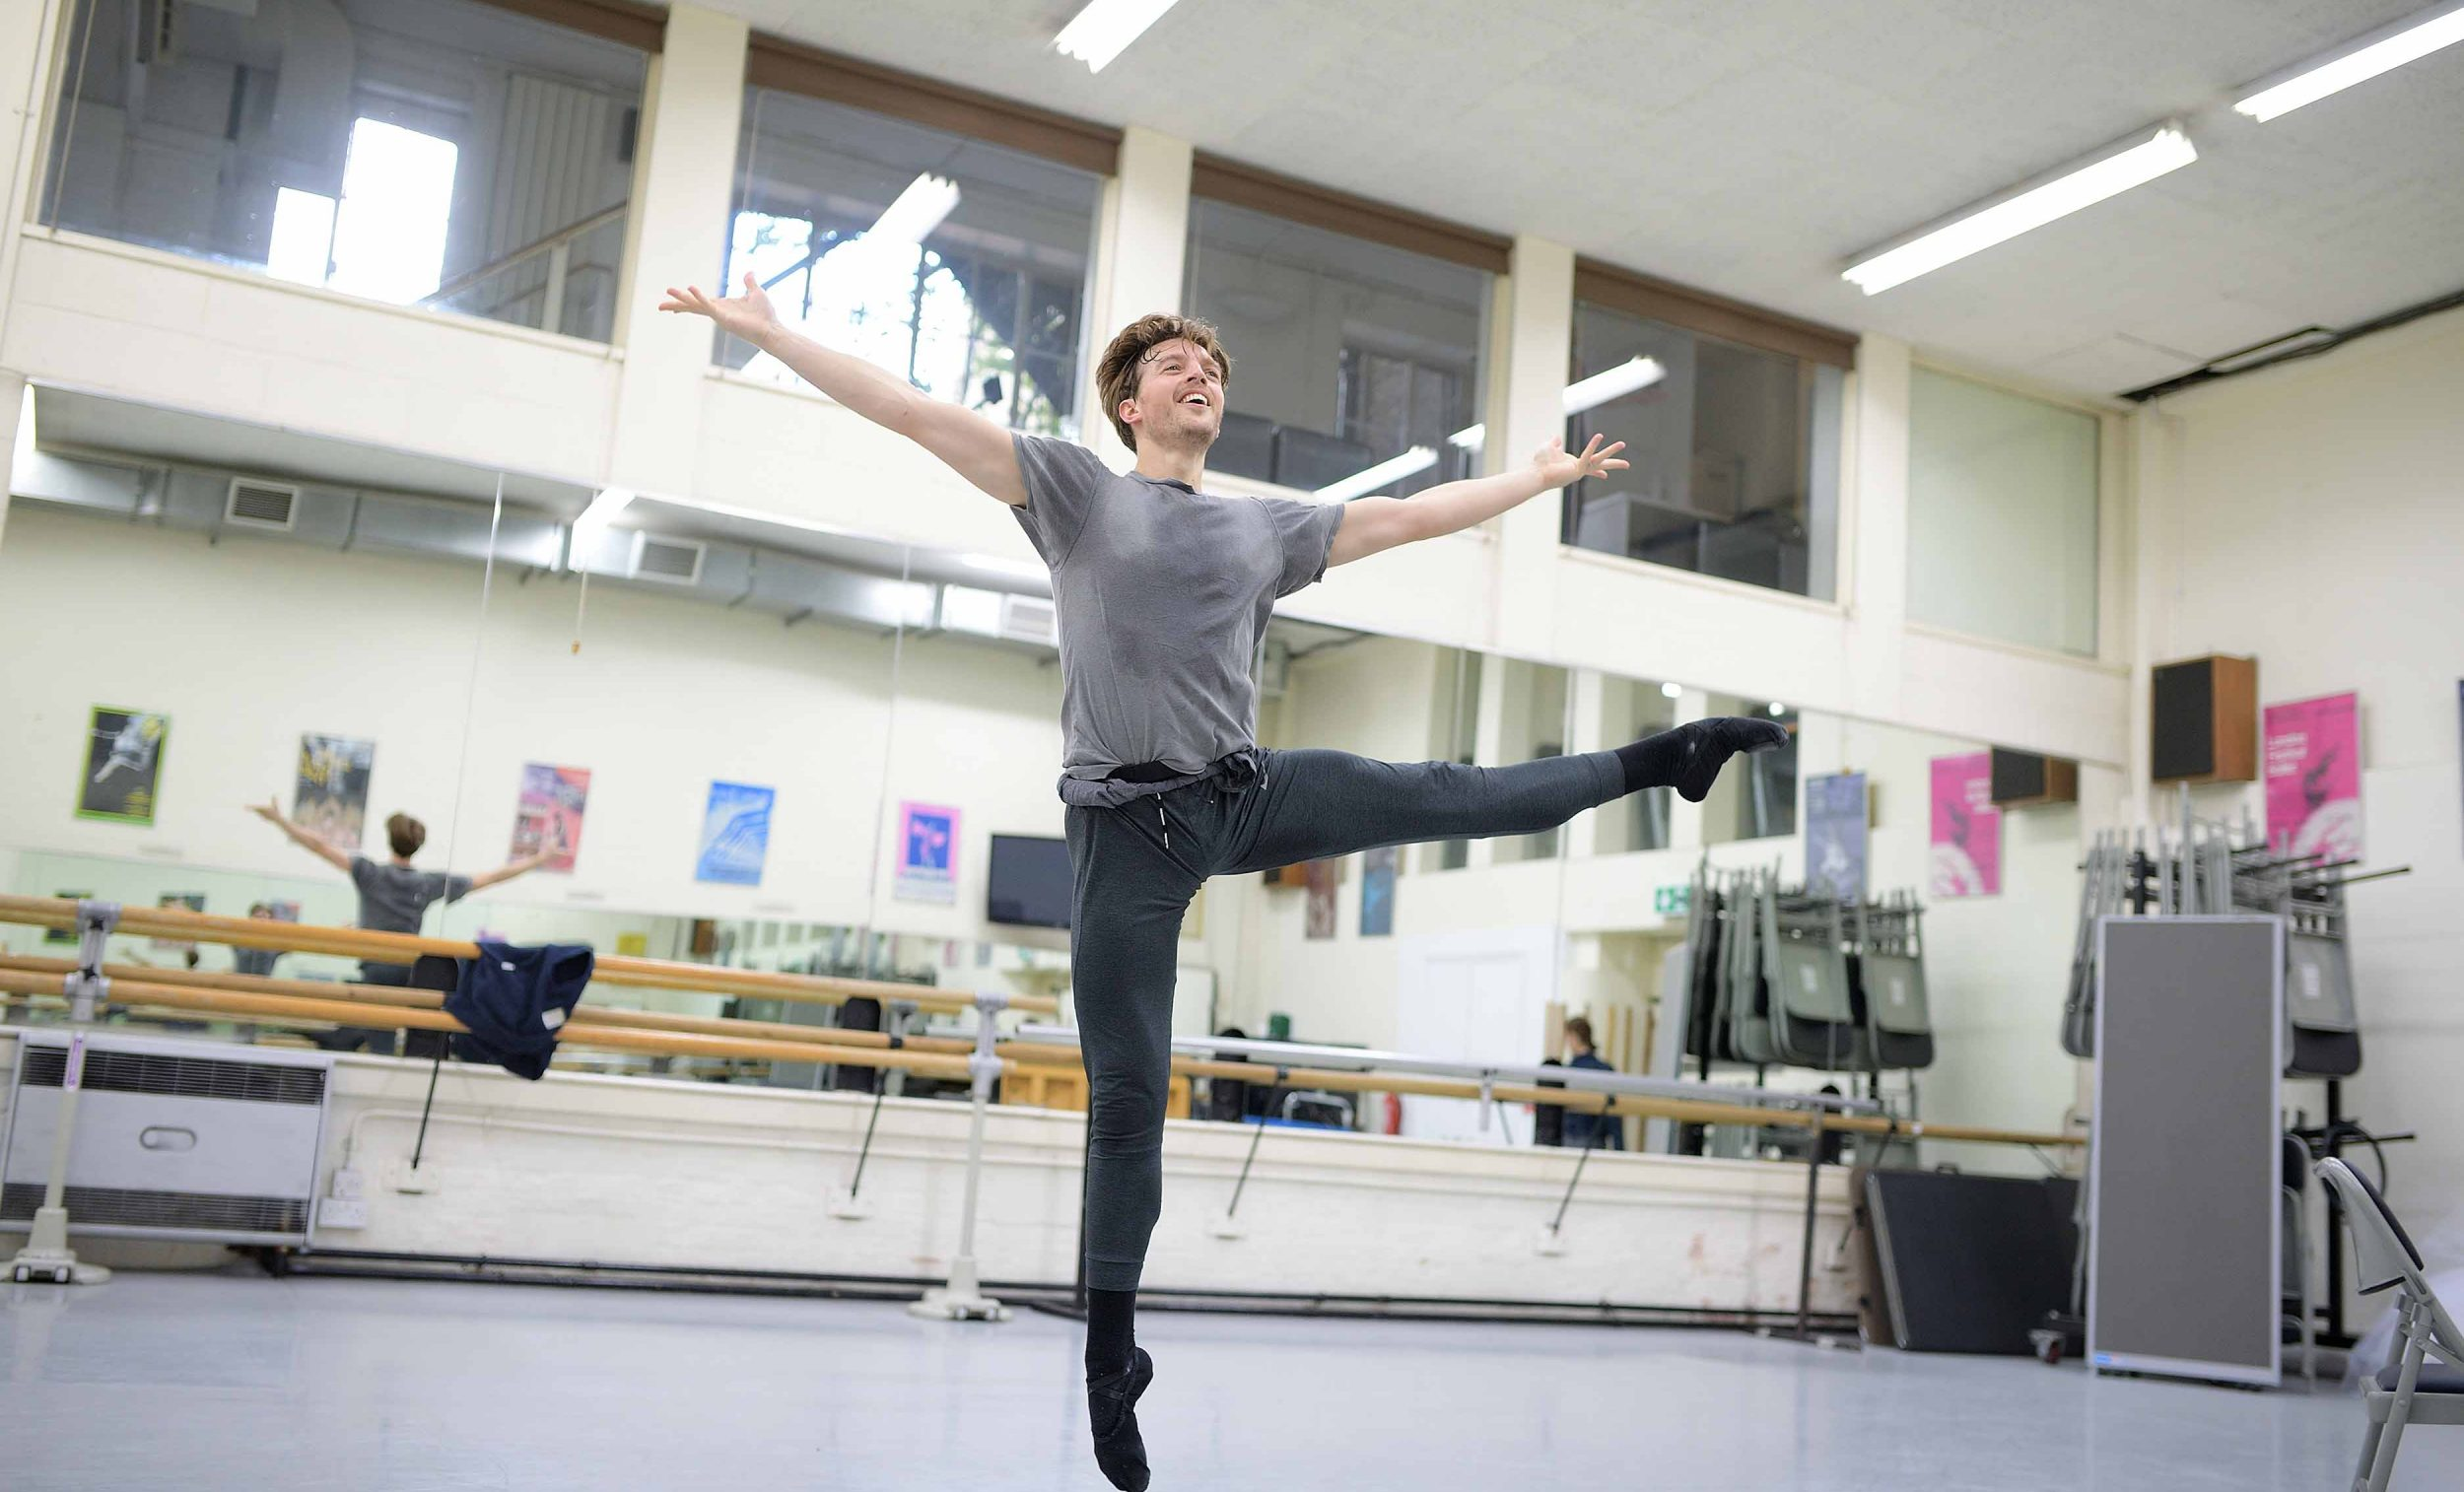 Joseph-Caley-in-rehearsals-for-Manon-(c)-Laurent-Liotardo-(2)_WEB